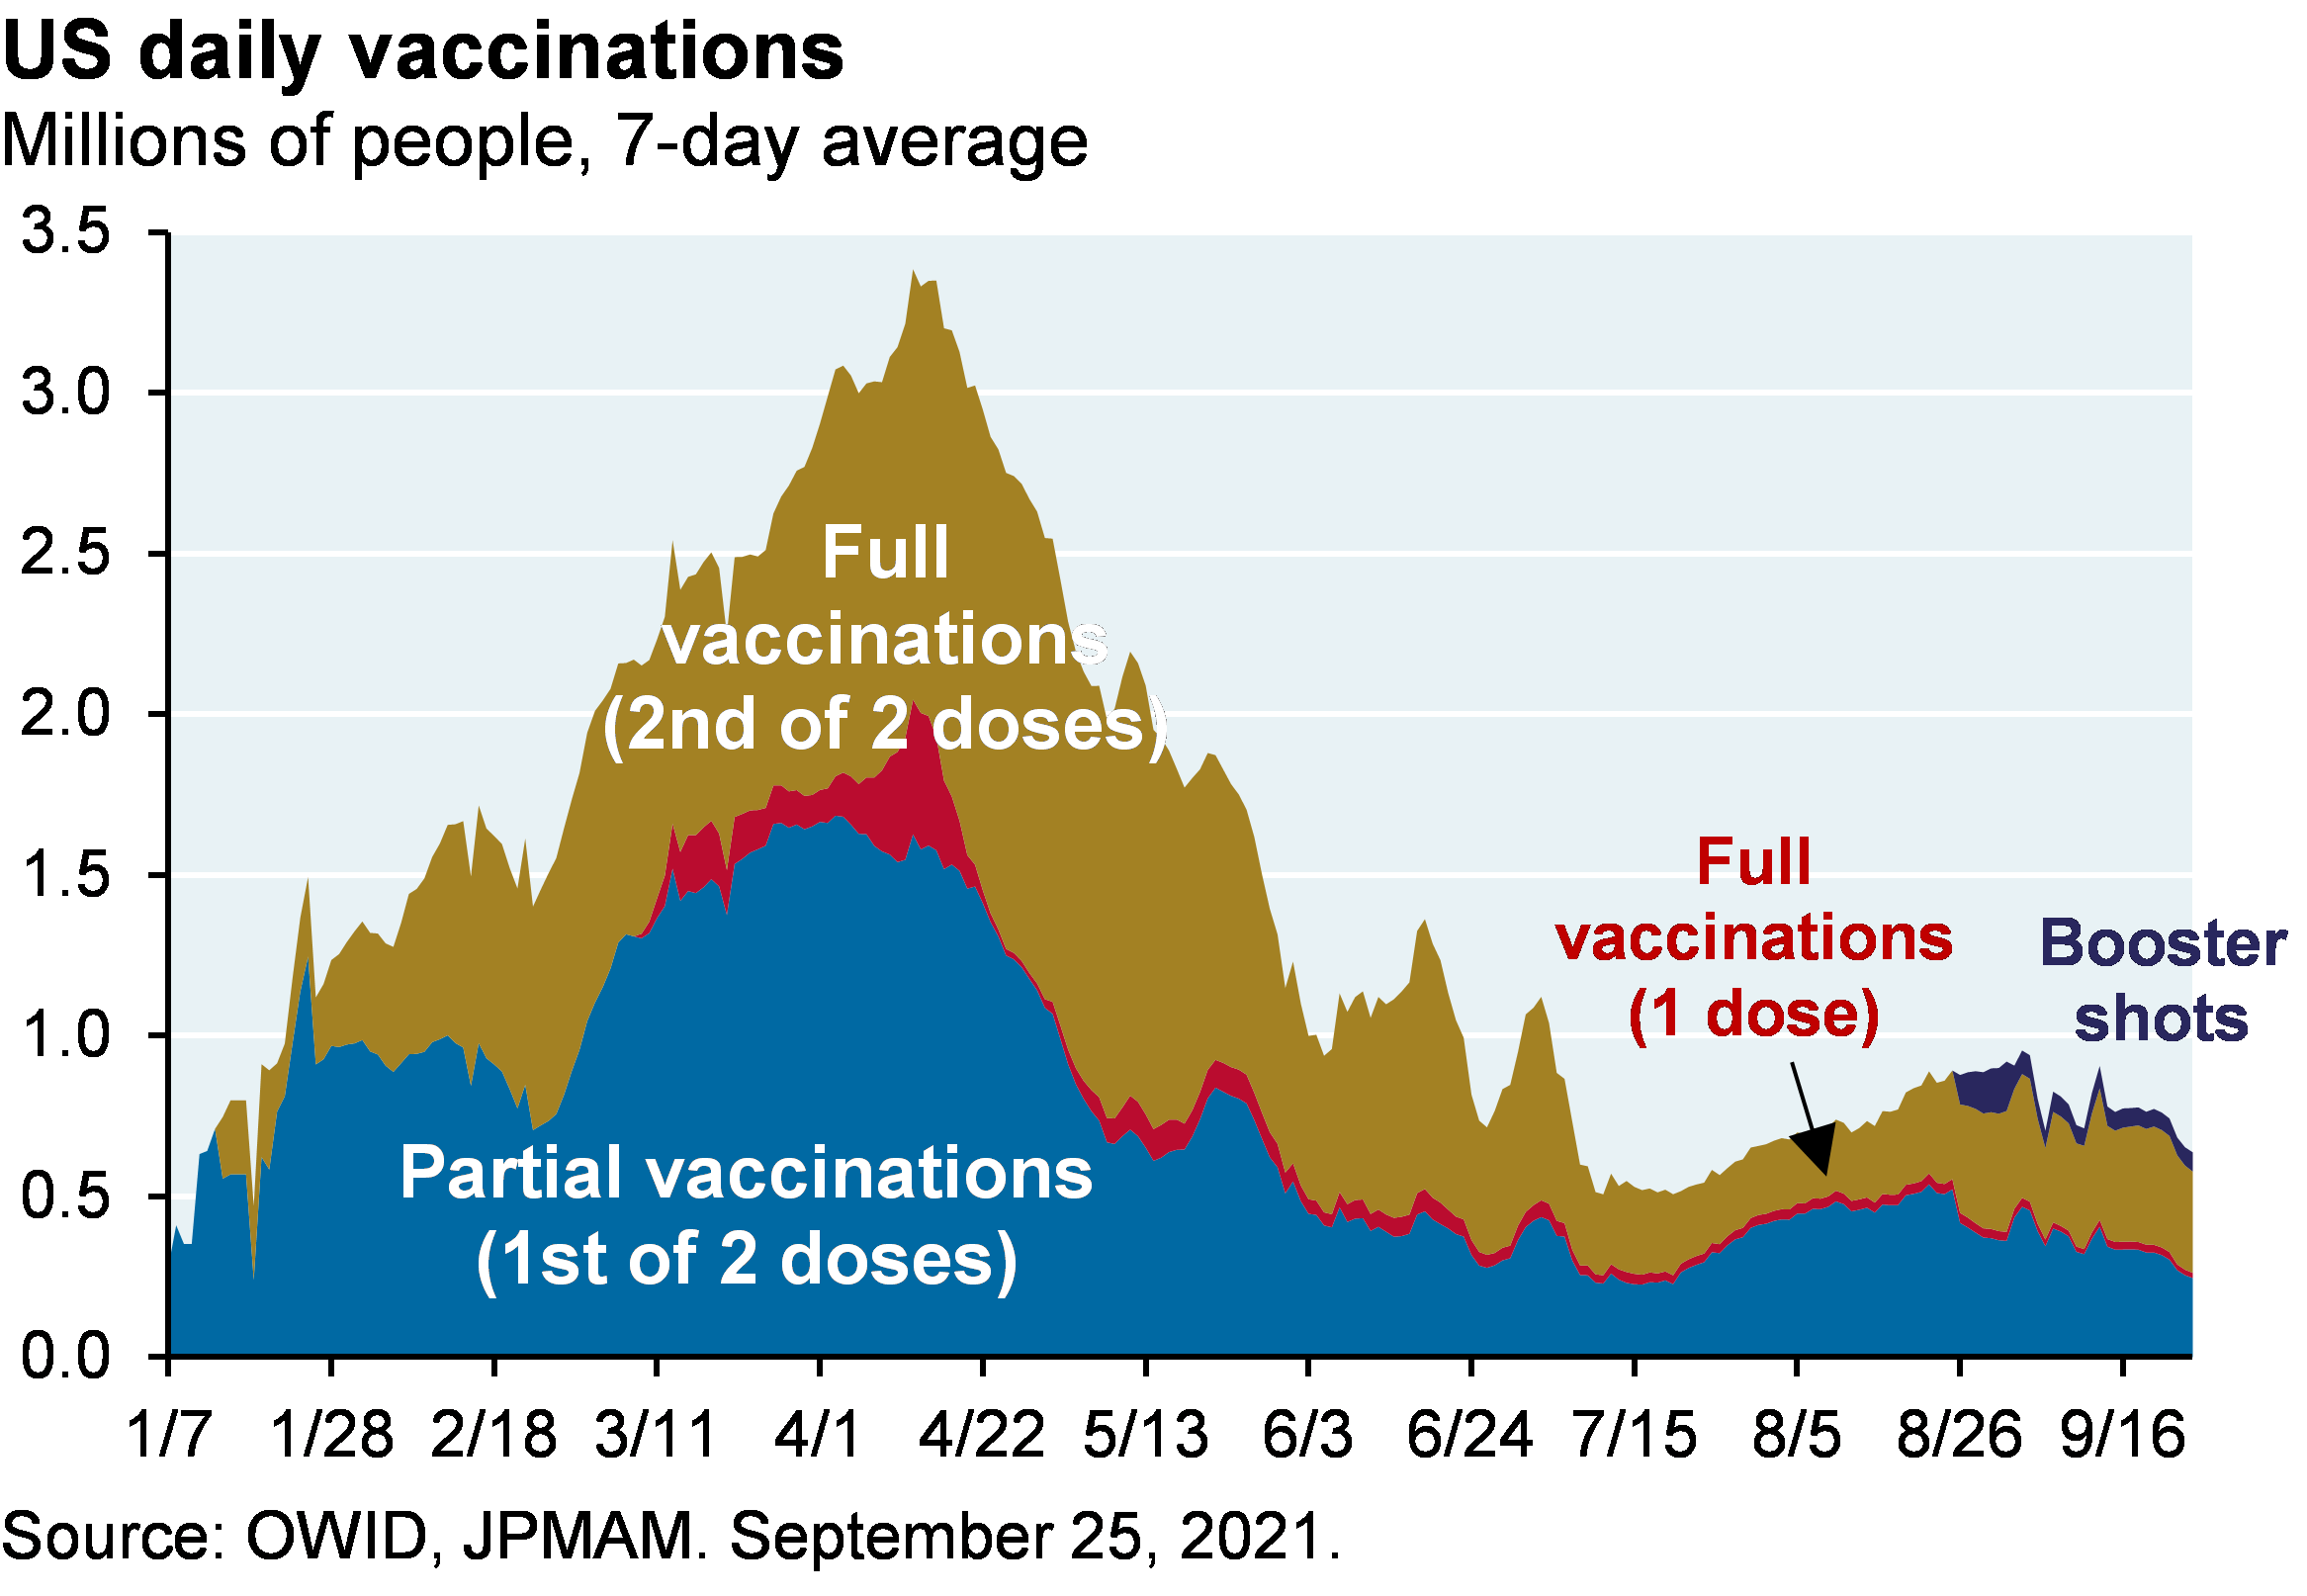 Area chart shows partial, 1-dose full, 2-dose full, and booster dose US daily vaccinations. At the April peak, about 3.3 million people were getting vaccinated a day. More recently, about 500k people are getting vaccinated a day, split evenly between partial and full vaccinations, with a small portion of doses going to booster shots and 1-dose vaccinations.